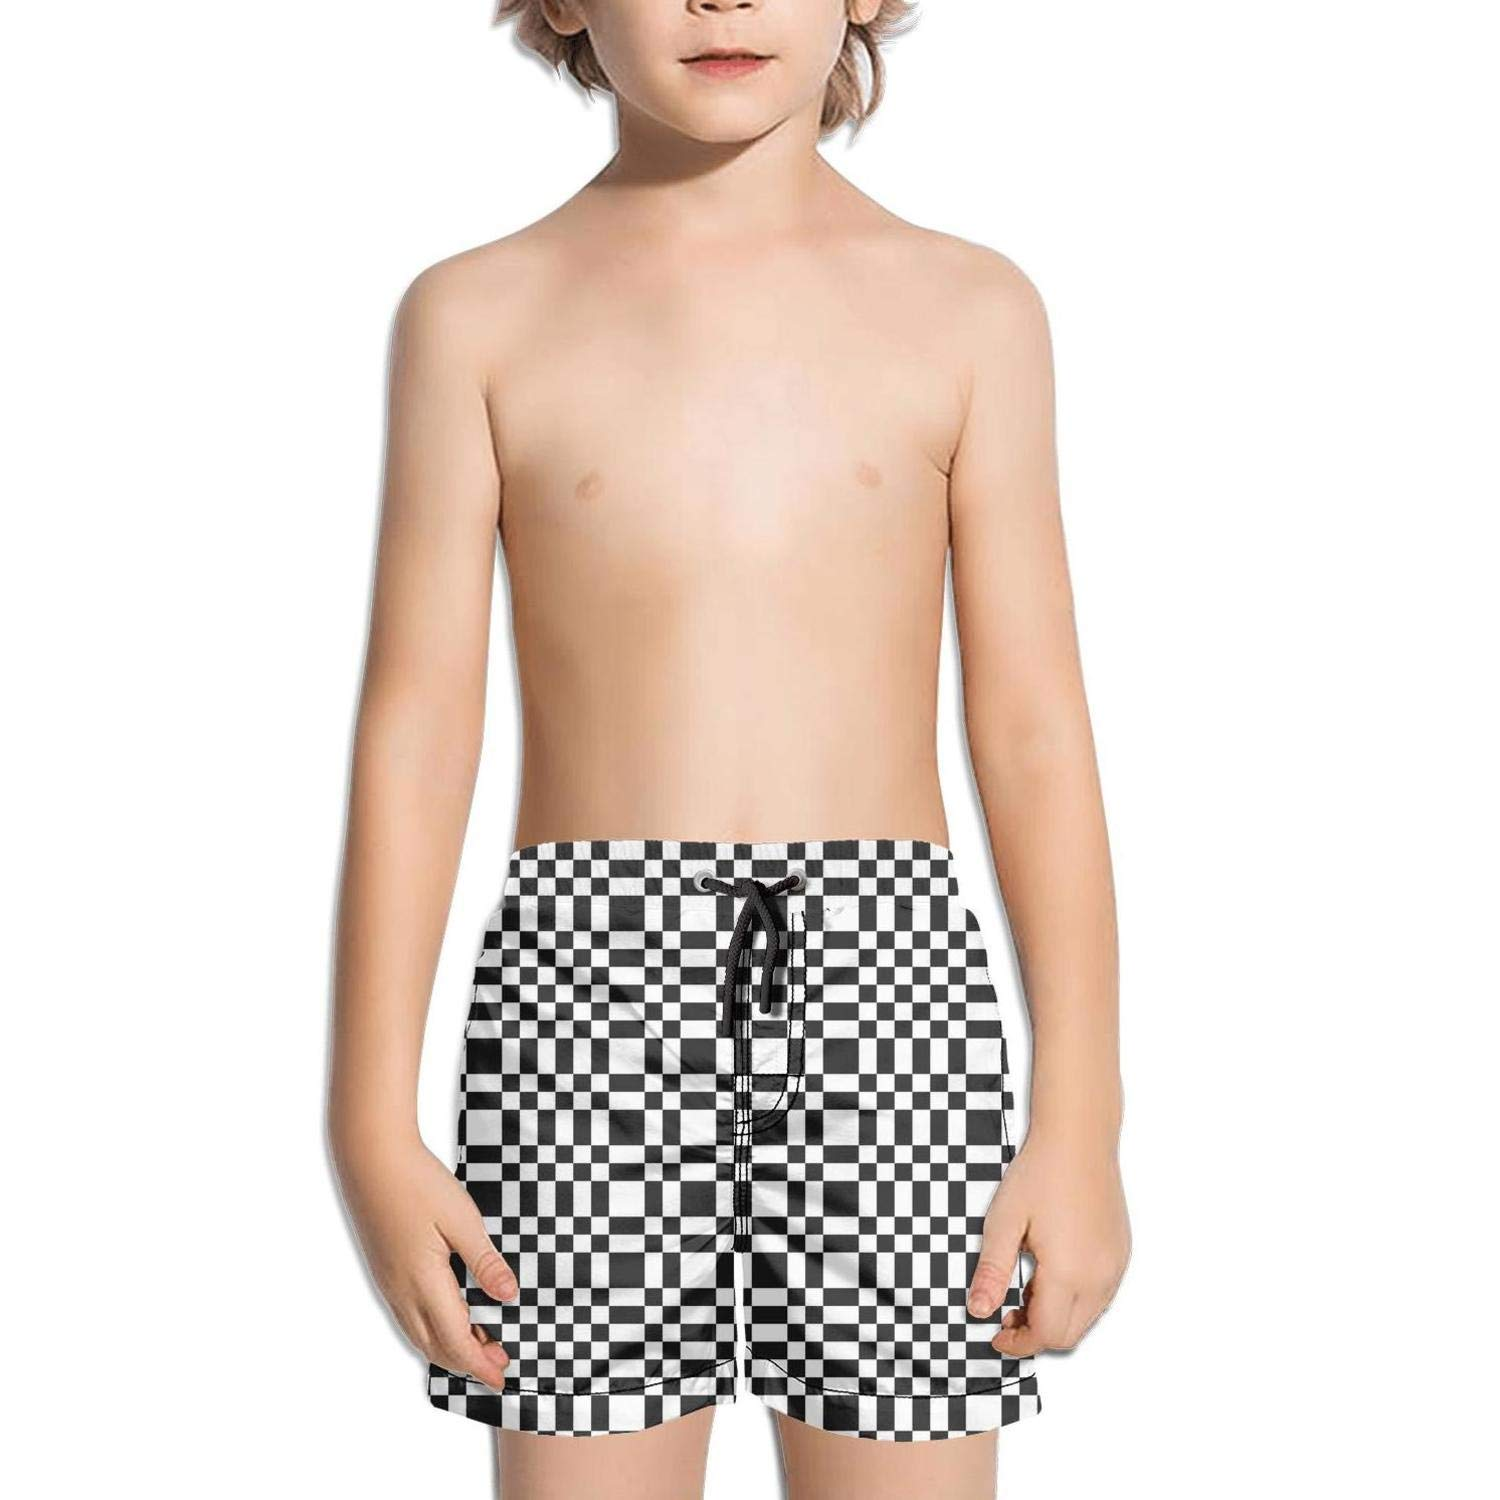 Abstract Black and White Minimal Chequered Effect Fully Lined Solid Board Swimming Trunks Shorts